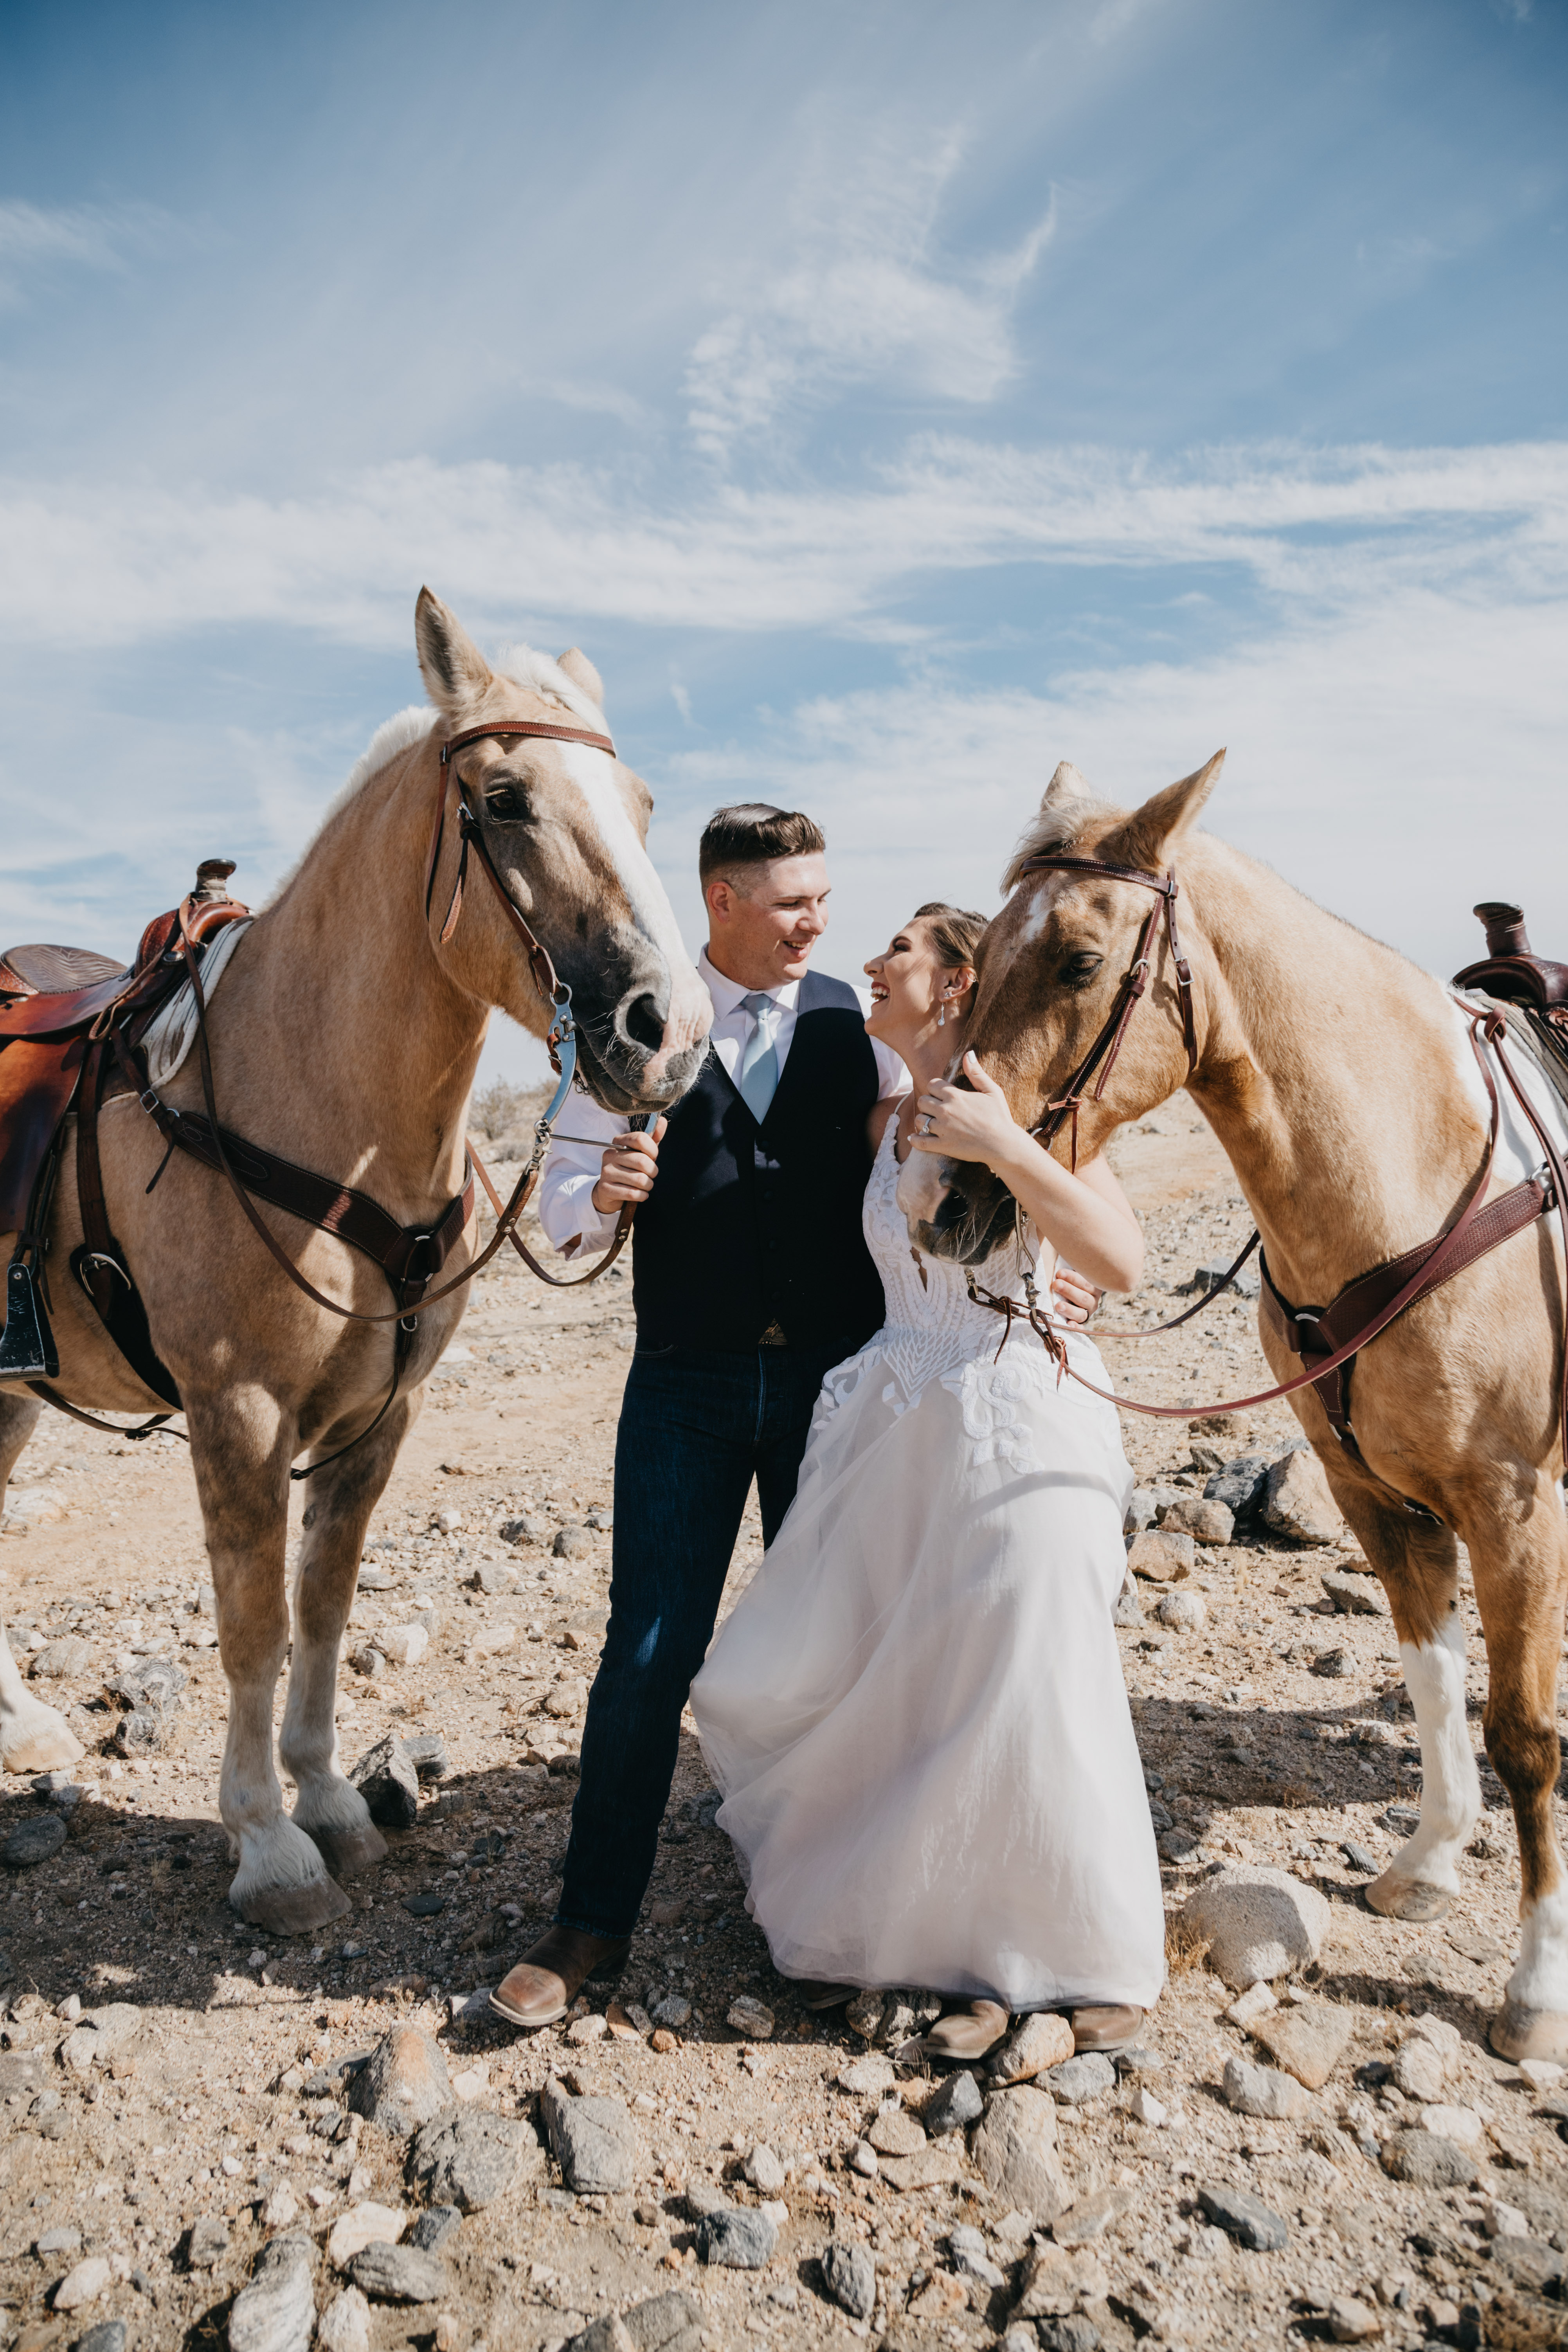 Bride and Groom portraits with horses, image by Fatima Elreda Photo